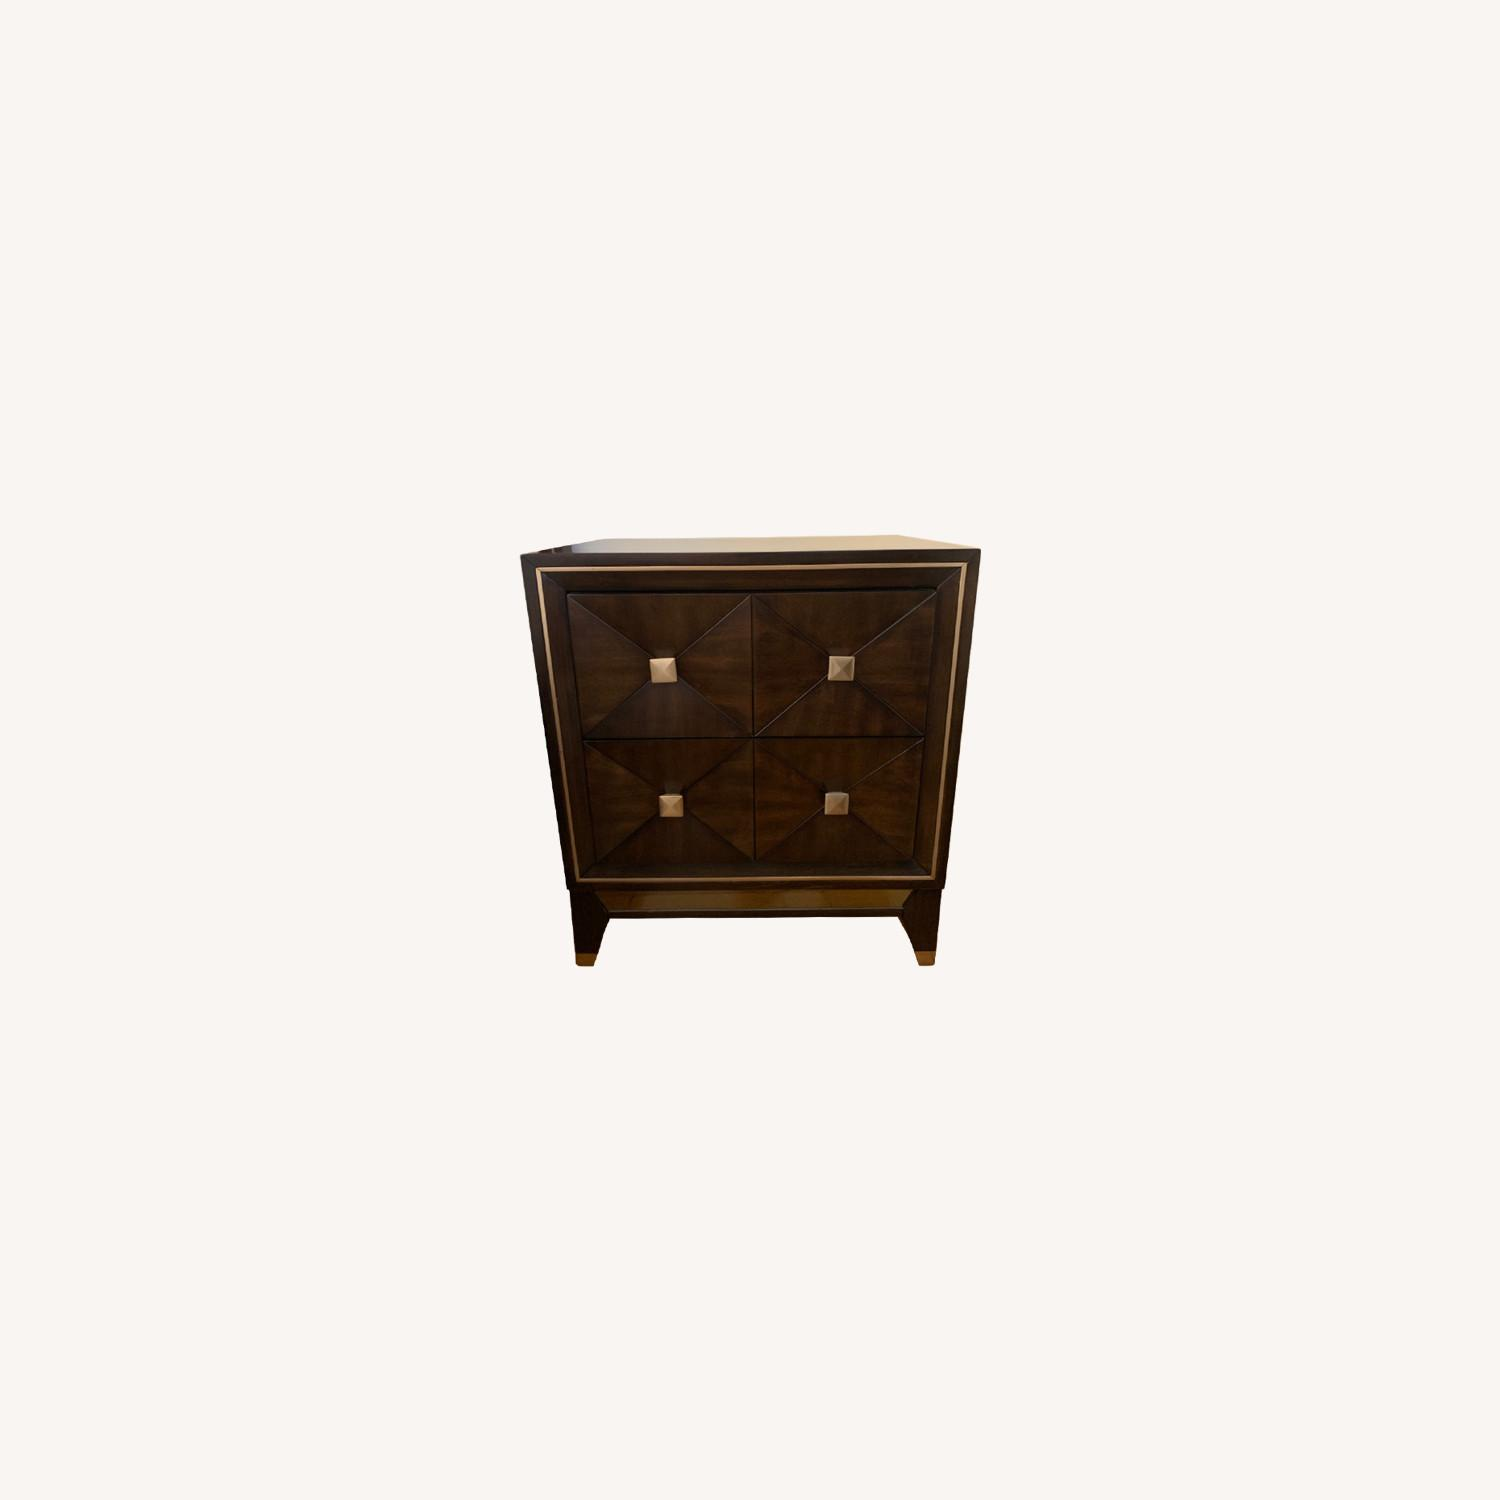 Bob's Discount Furniture Chocolate Nightstand - image-0